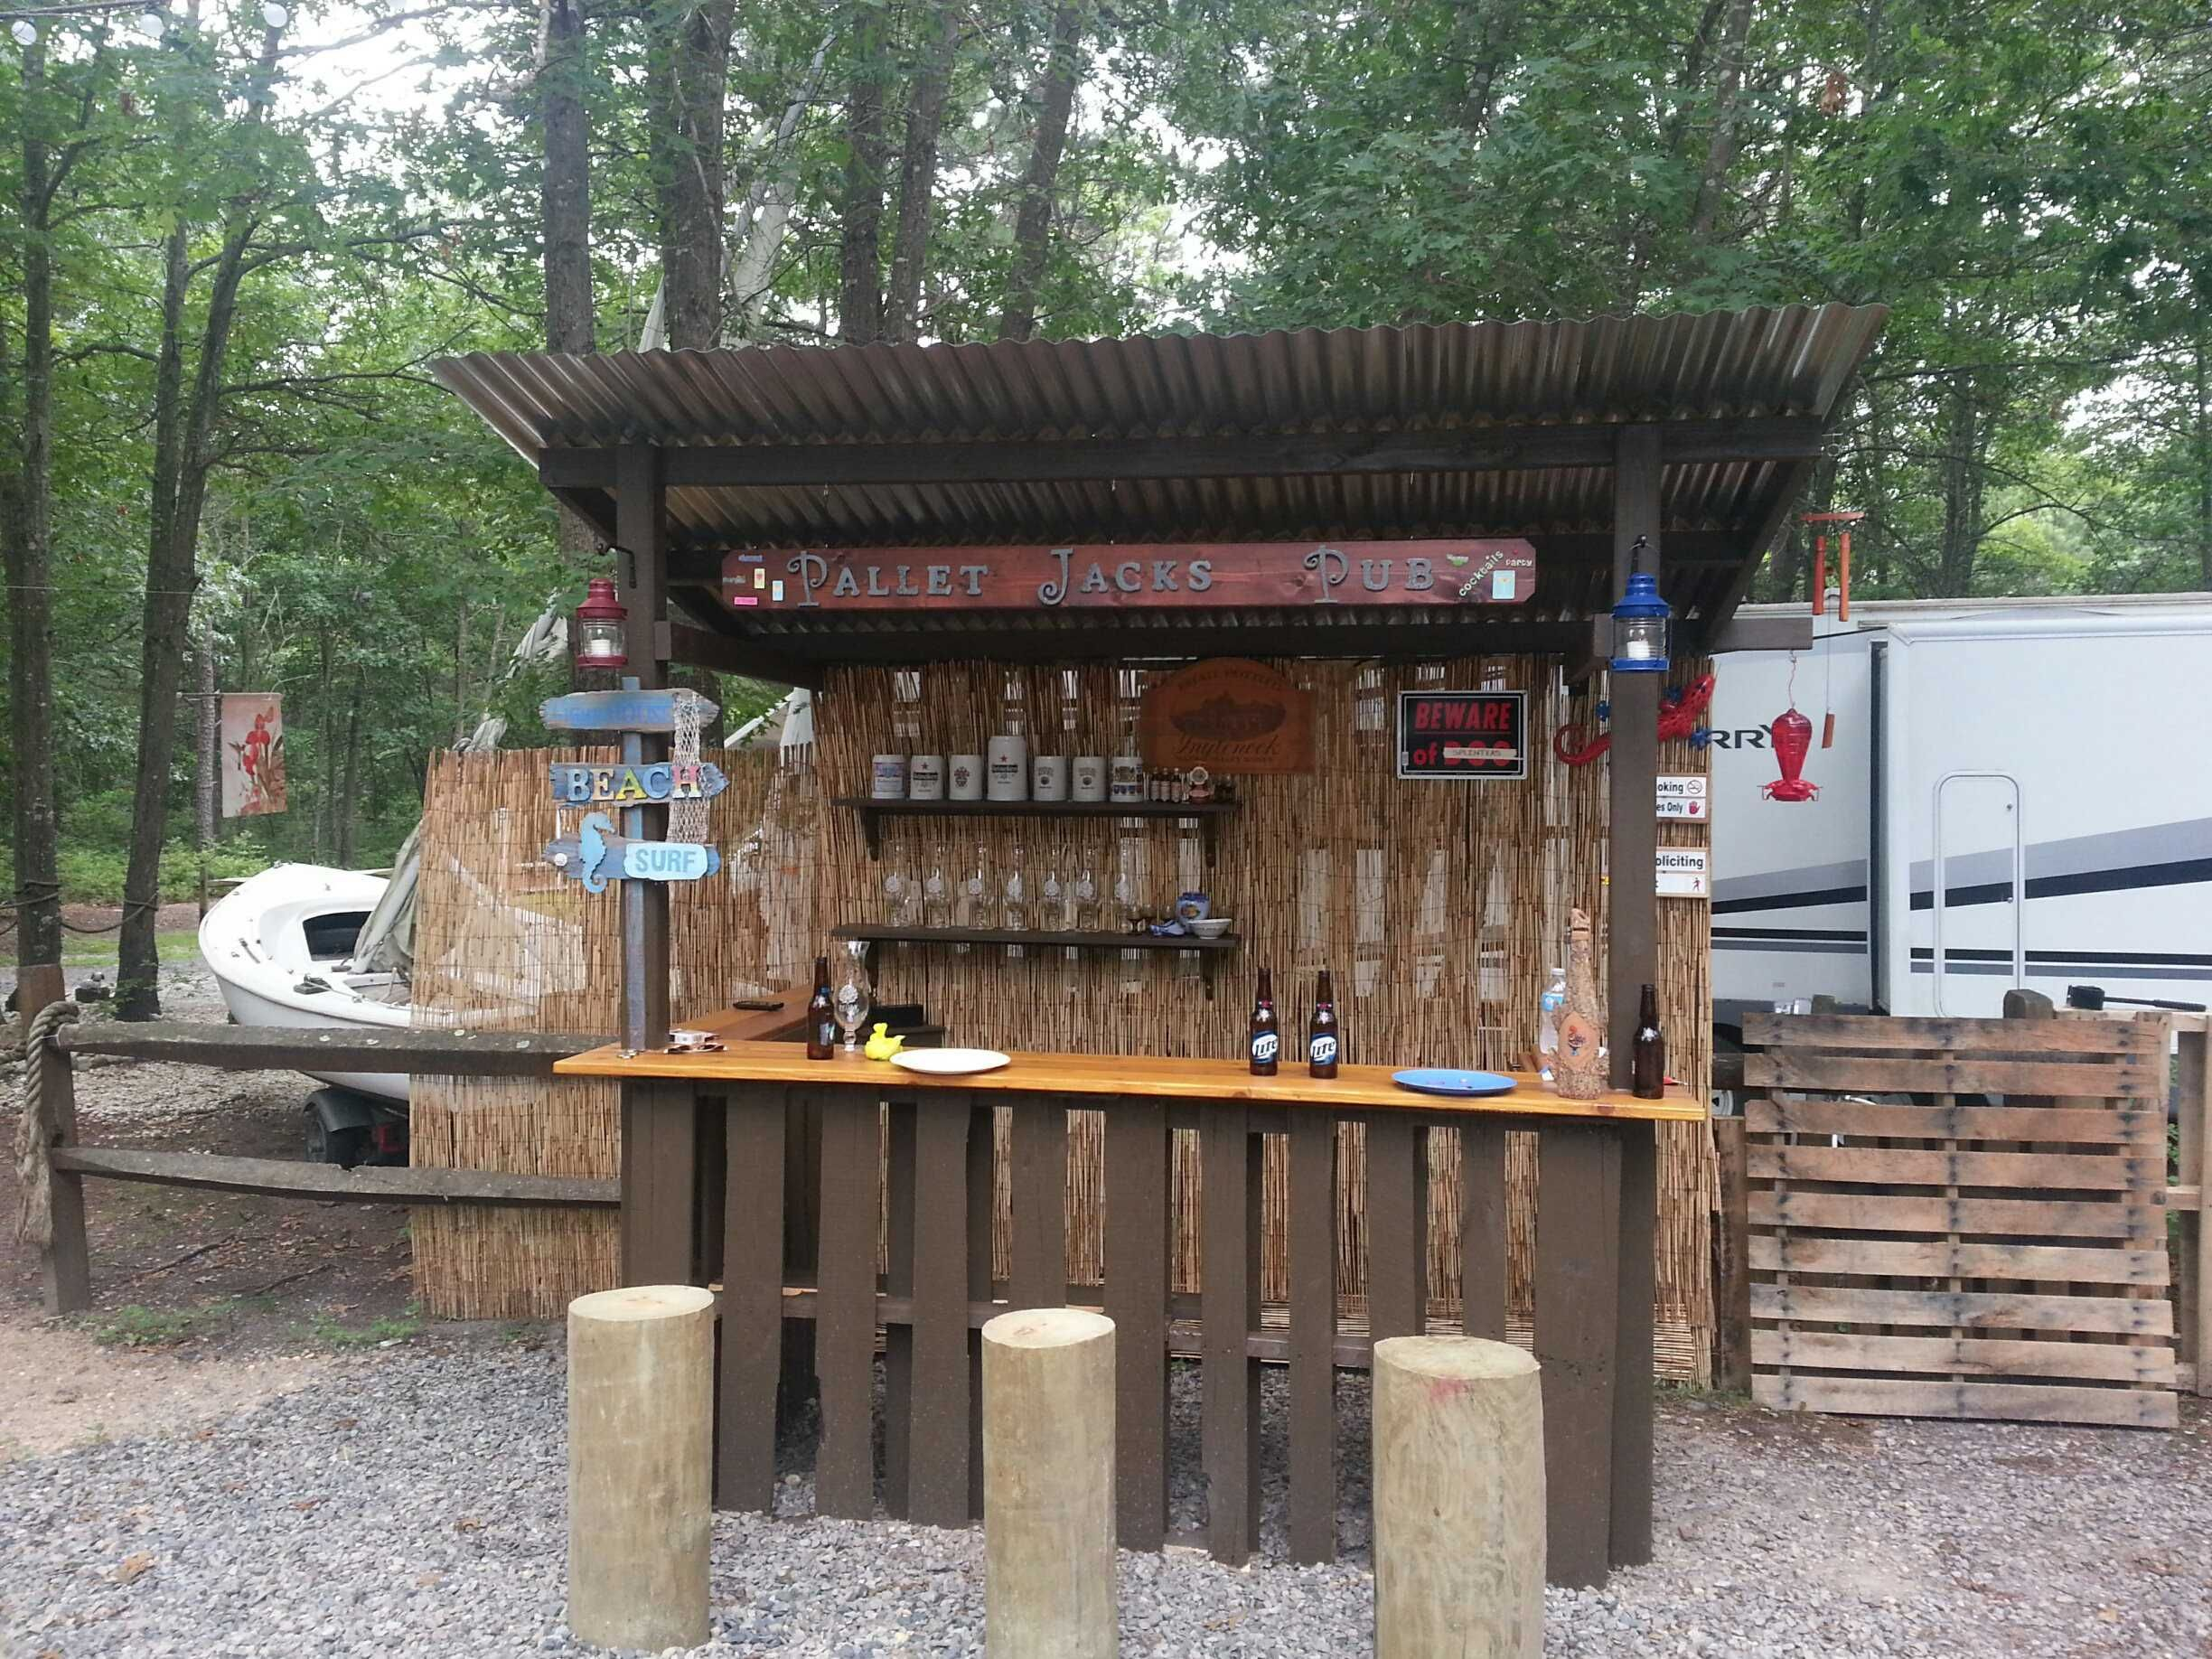 Pool Tiki Bar Ideas find this pin and more on garden and outdoor spaces smart and delightful outdoor bar ideas Outdoor Tiki Bar Made With Repurposed Pallets Pallet Ideas